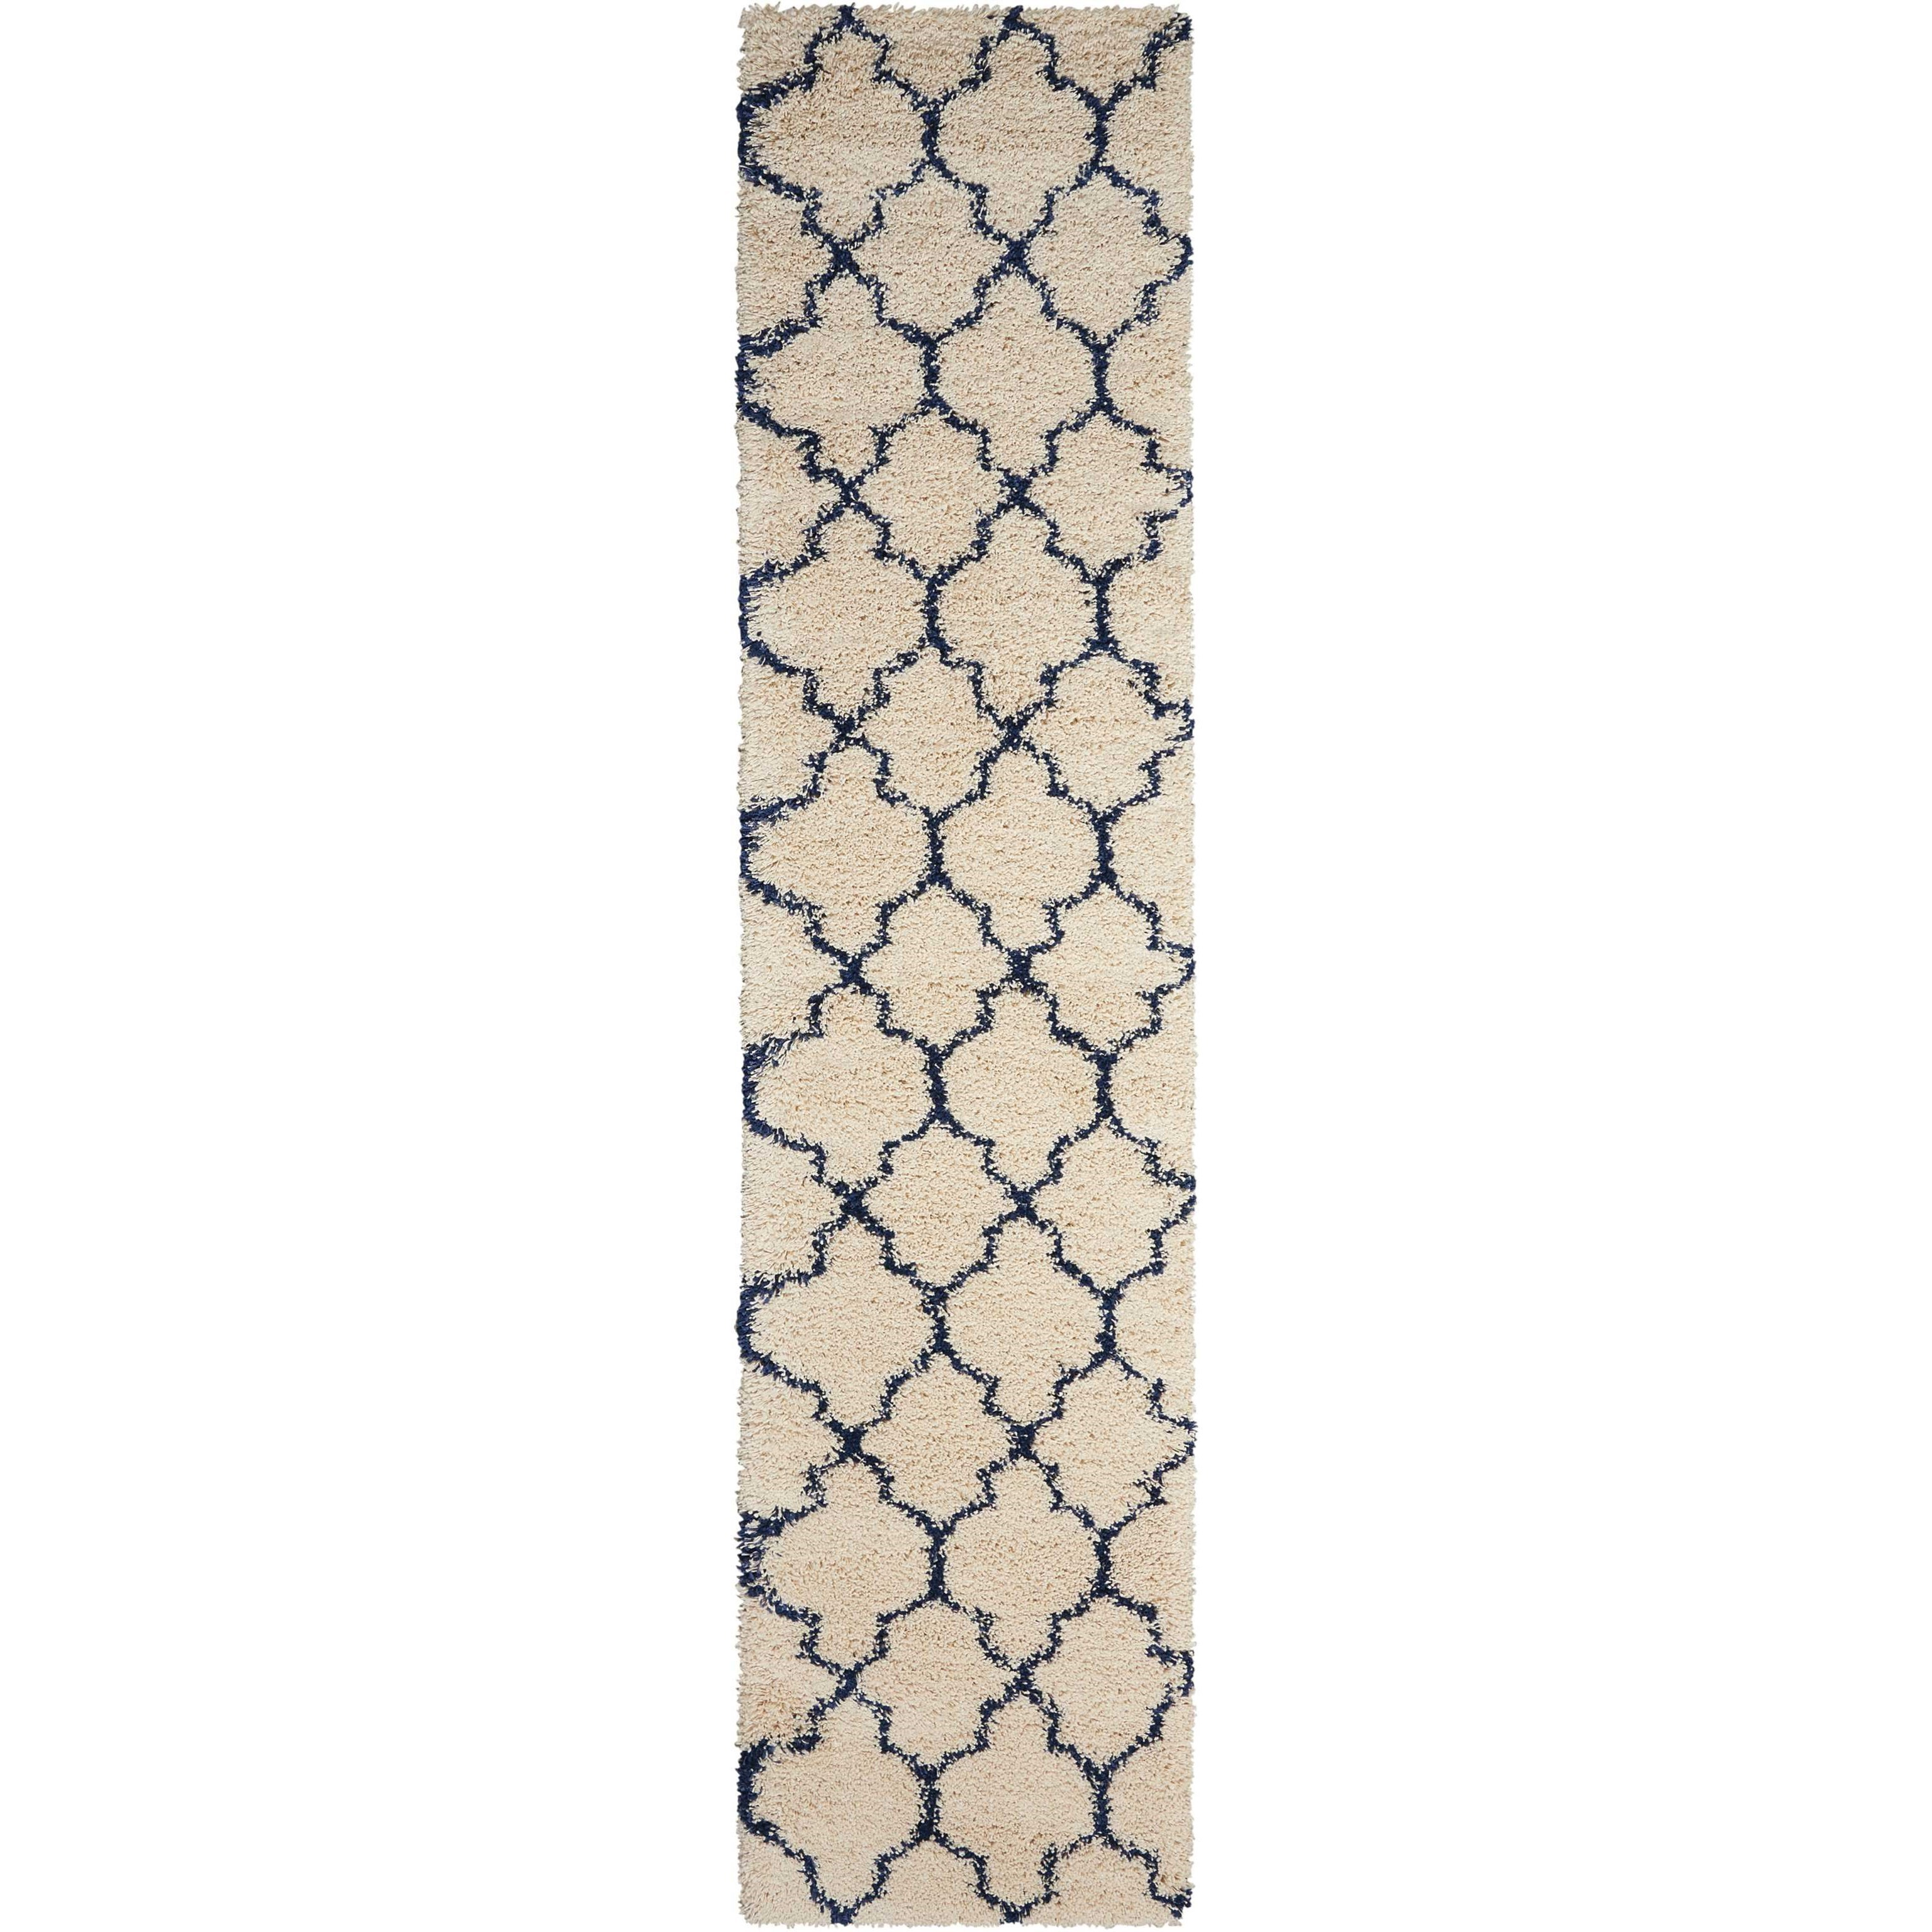 """Amore 2'2"""" x 10' Ivory/Blue Runner Rug by Nourison at Home Collections Furniture"""